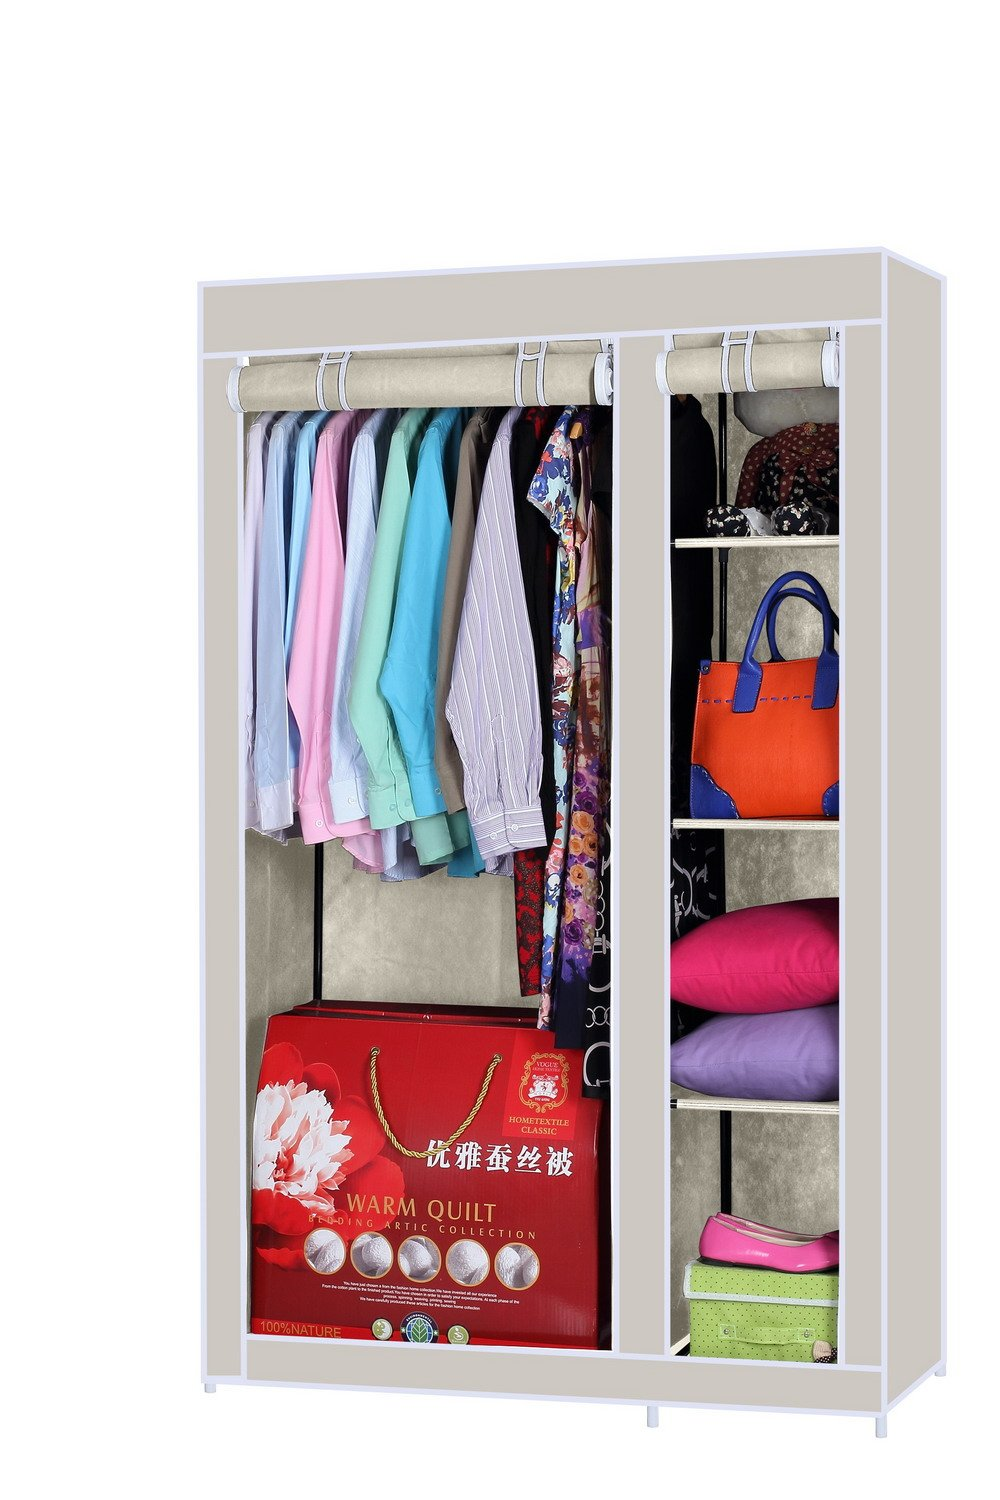 Due-home 2-Door Wardrobe Finished in Canvas Fabric, Beige Action: & # x2194; 110 & # X2195; 175 & # x2197; 45 cm